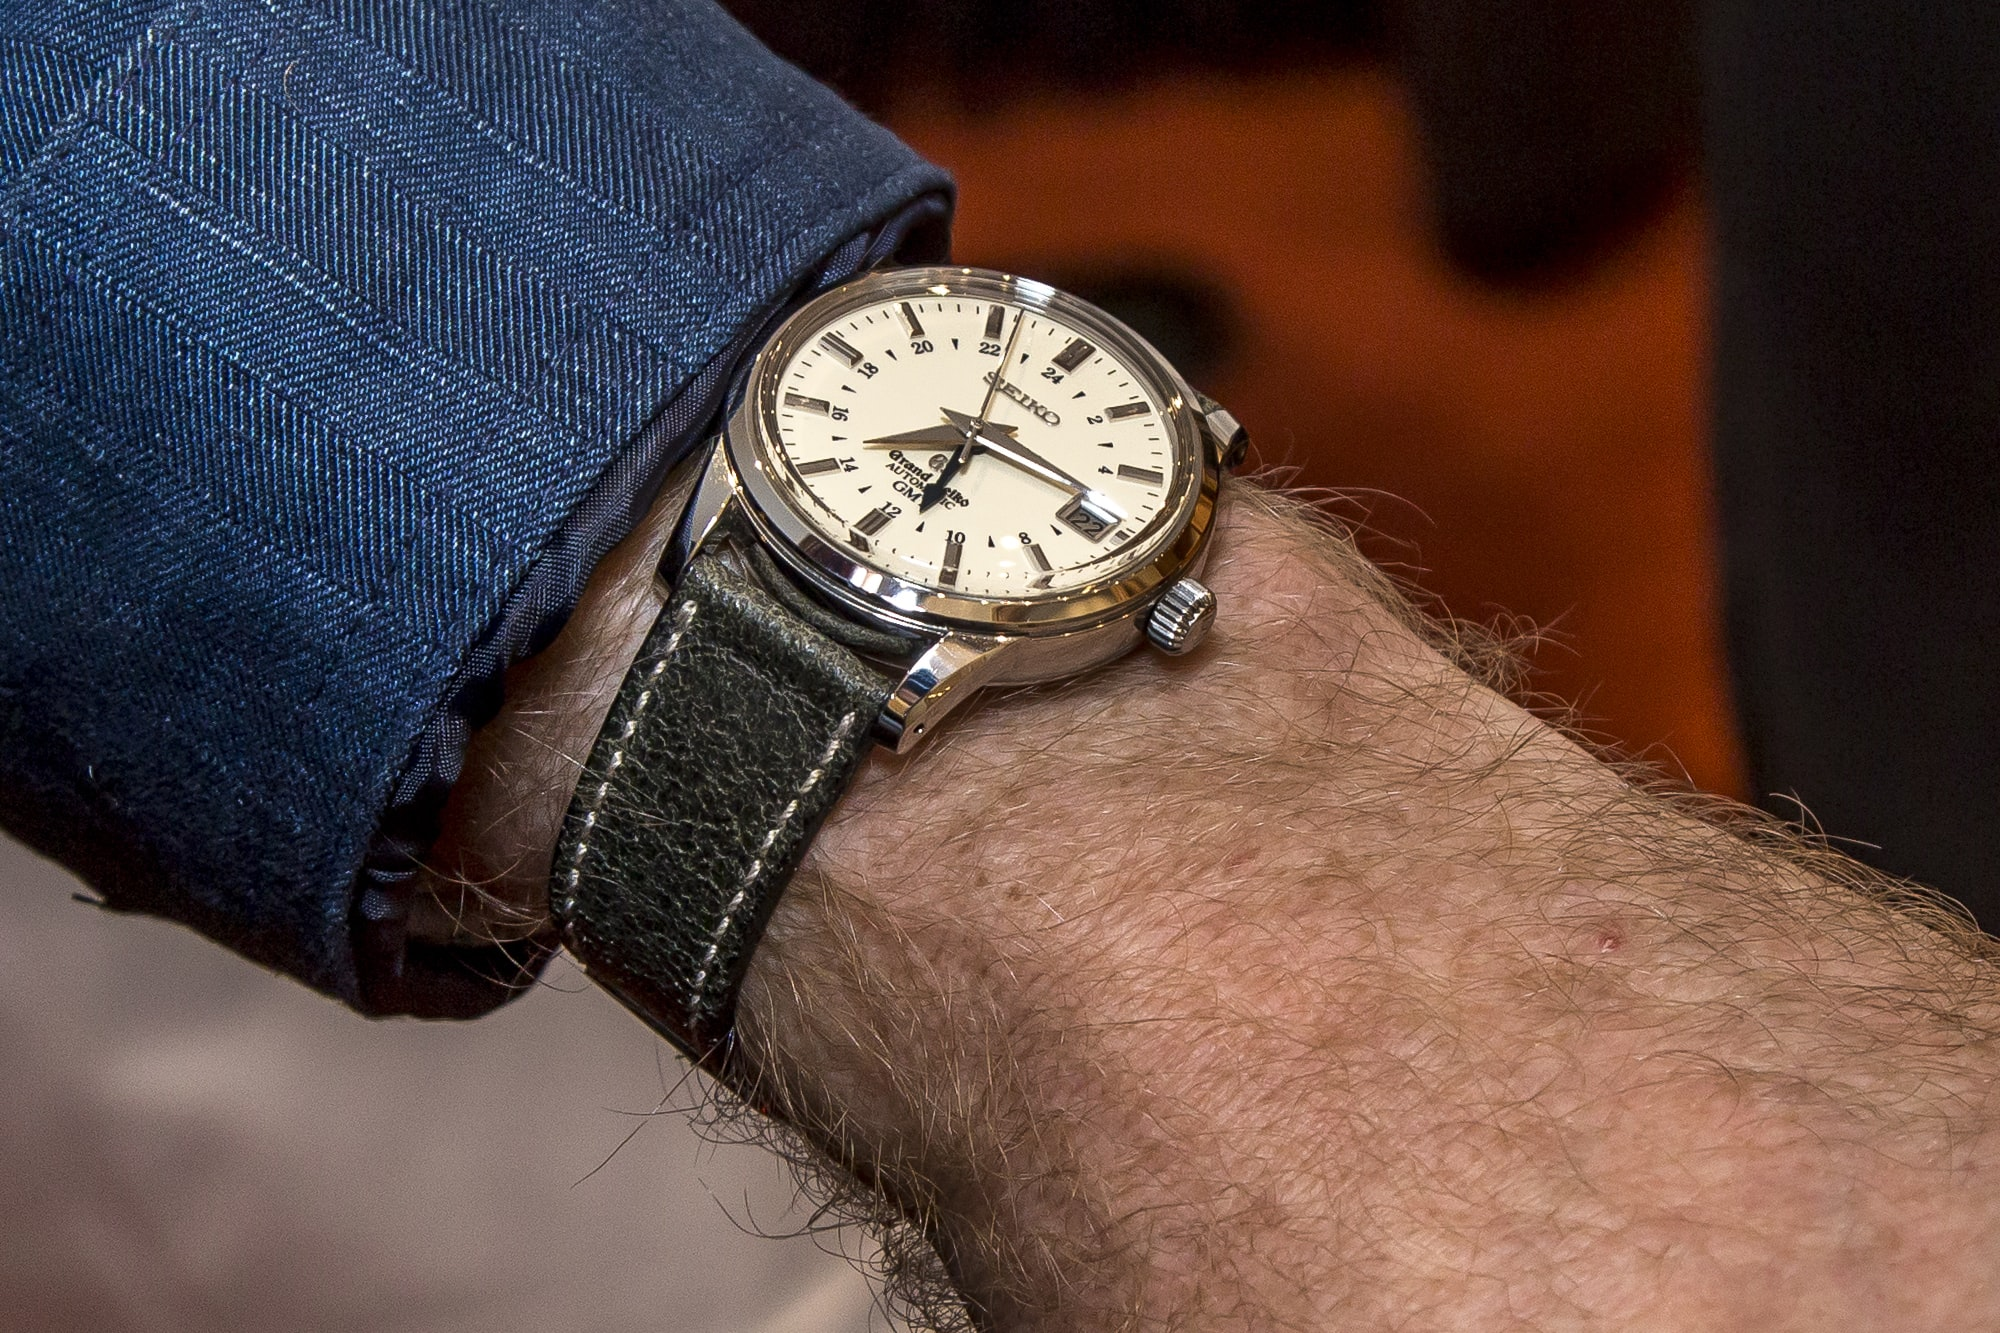 Photo Report: HODINKEE Hosts A Collector Get-Together At The Wempe Boutique In London Photo Report: HODINKEE Hosts A Collector Get-Together At The Wempe Boutique In London seiko